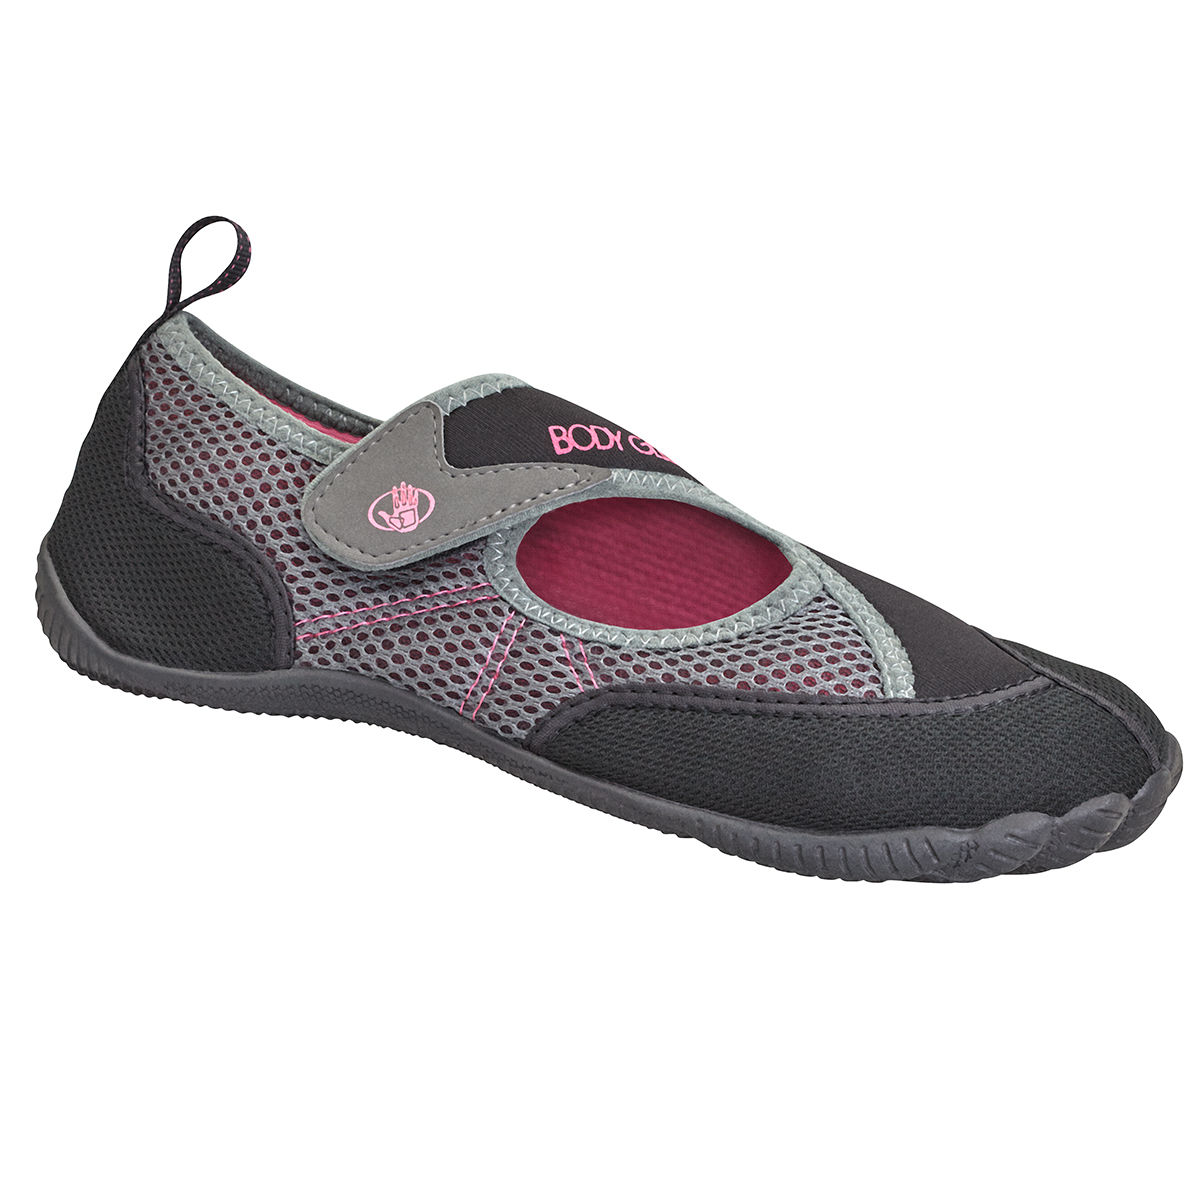 Body Glove Horizon Girls Water Shoe